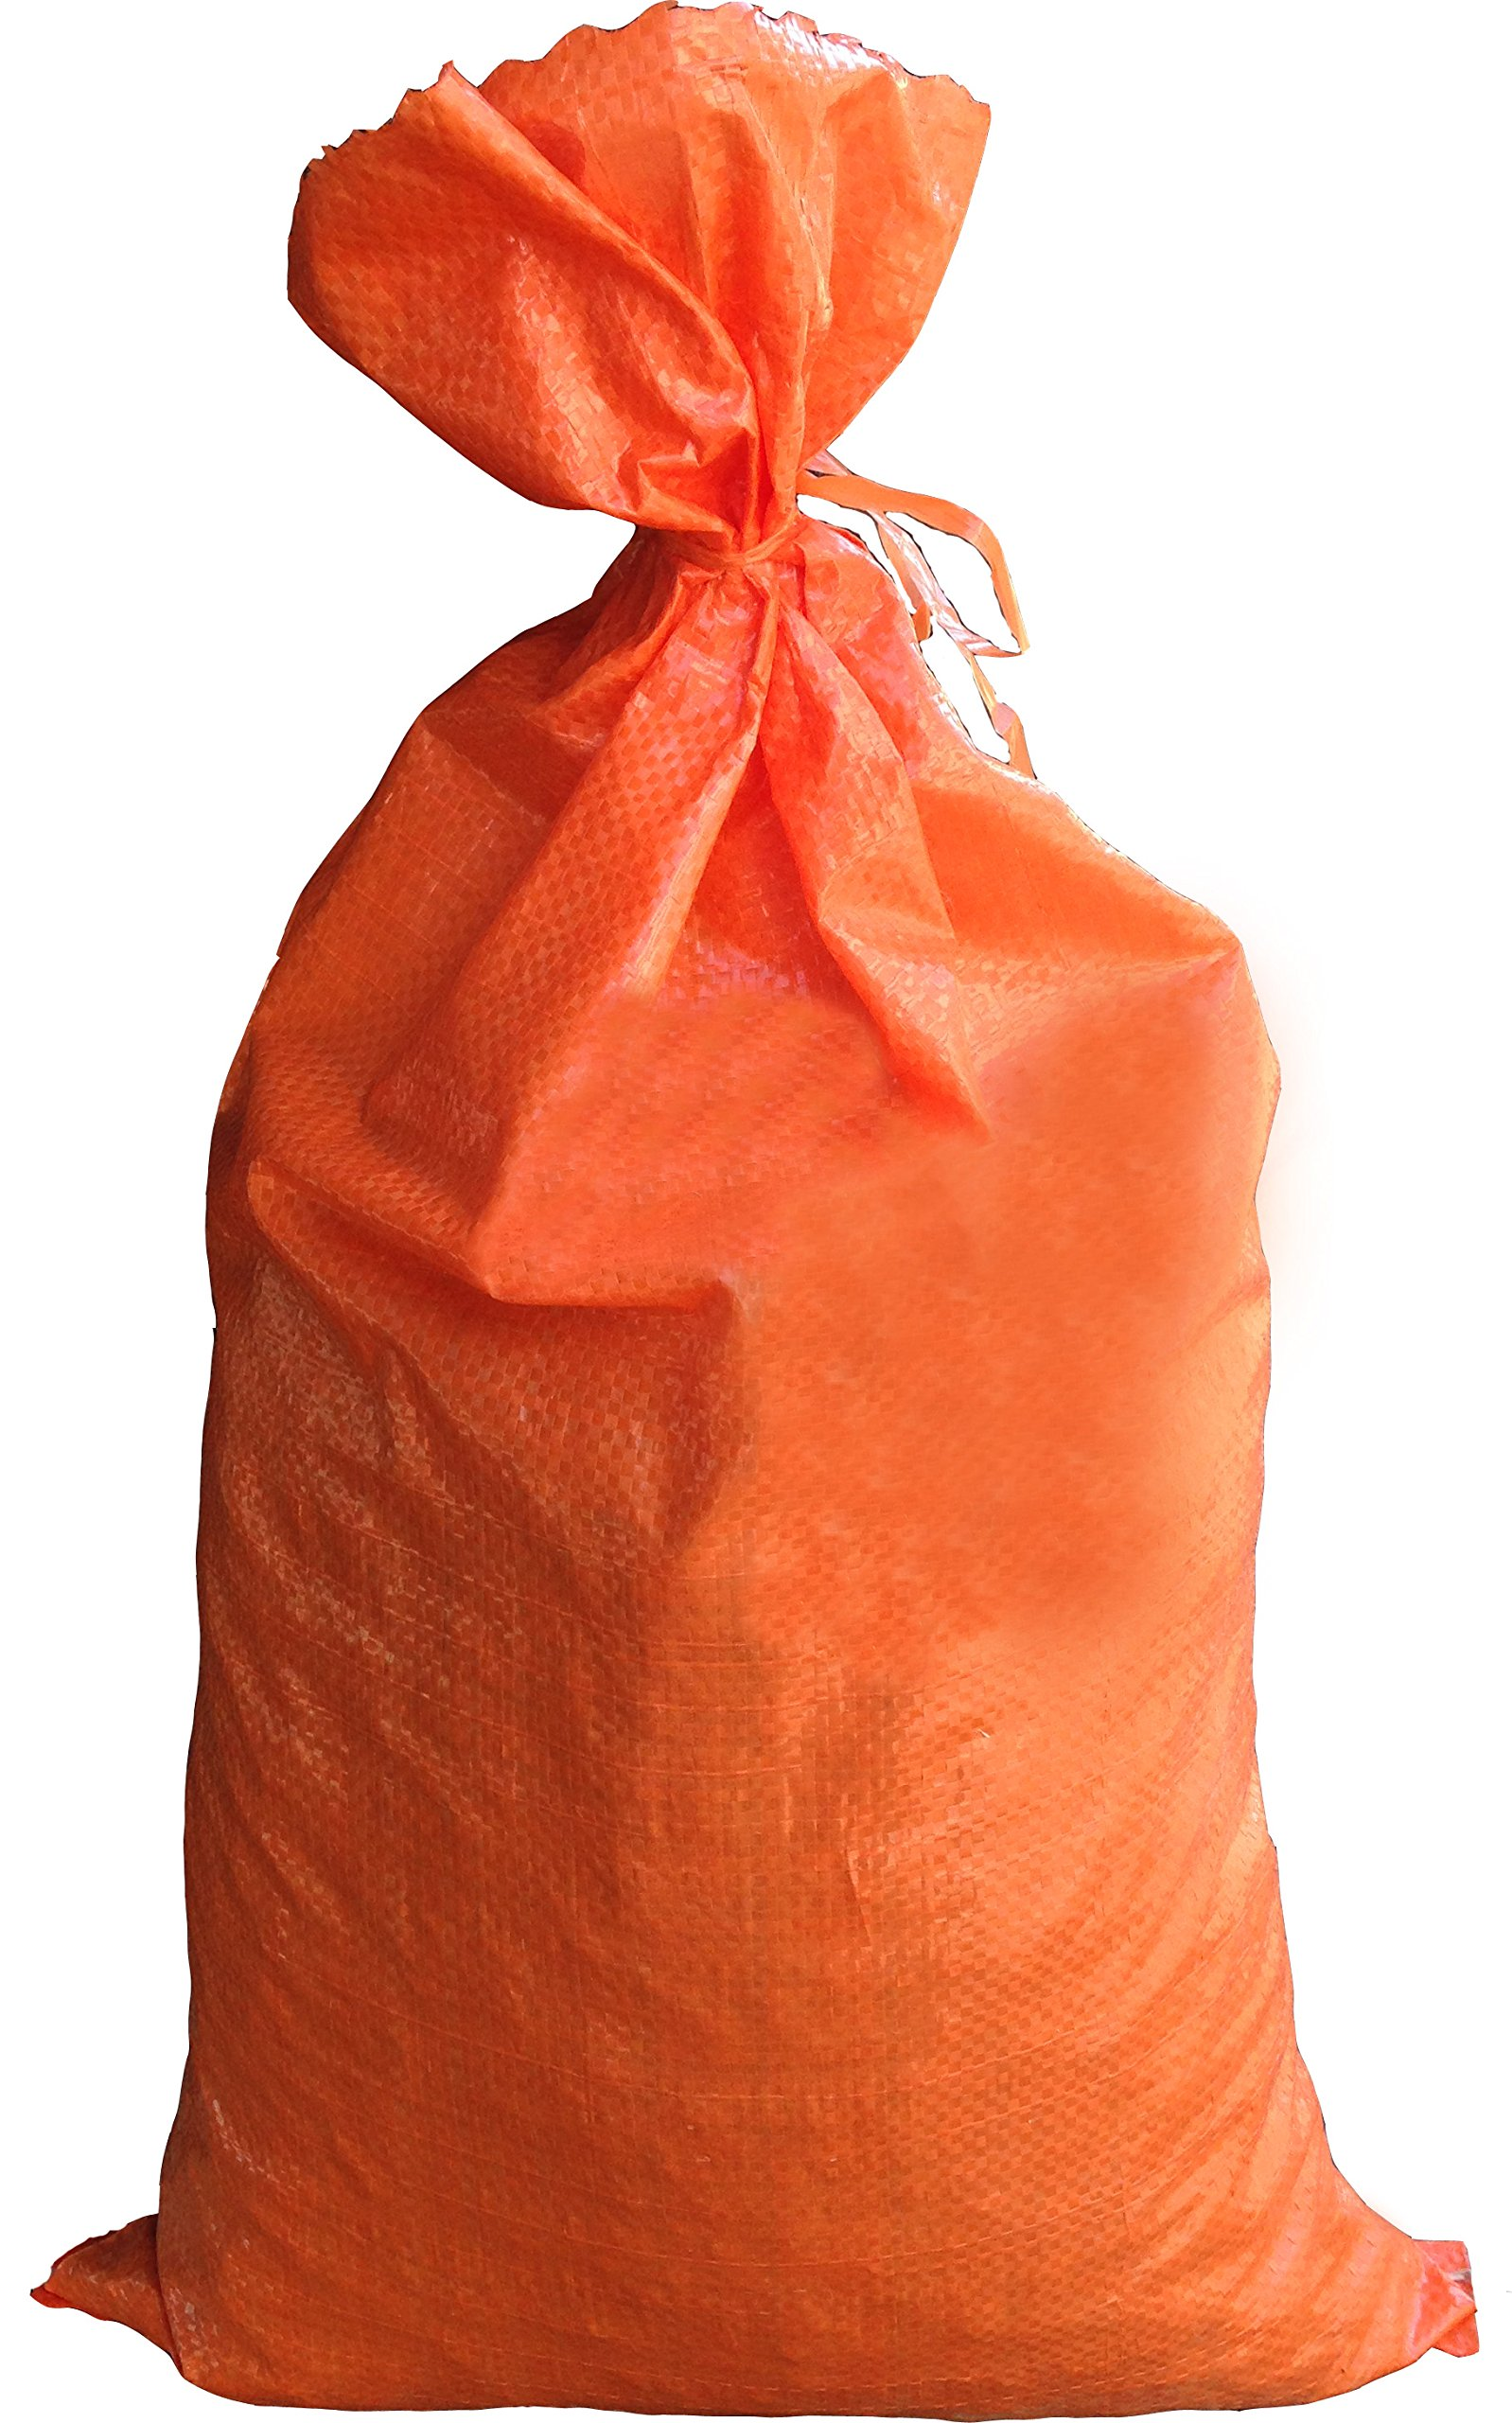 Sandbags for Flooding - Size: 14'' x 26'' - Color: Orange - Sand Bag - Flood Water Barrier - Water Curb - Tent Sandbags - Store Bags by Sandbaggy (500 Sandbags) by Sandbaggy